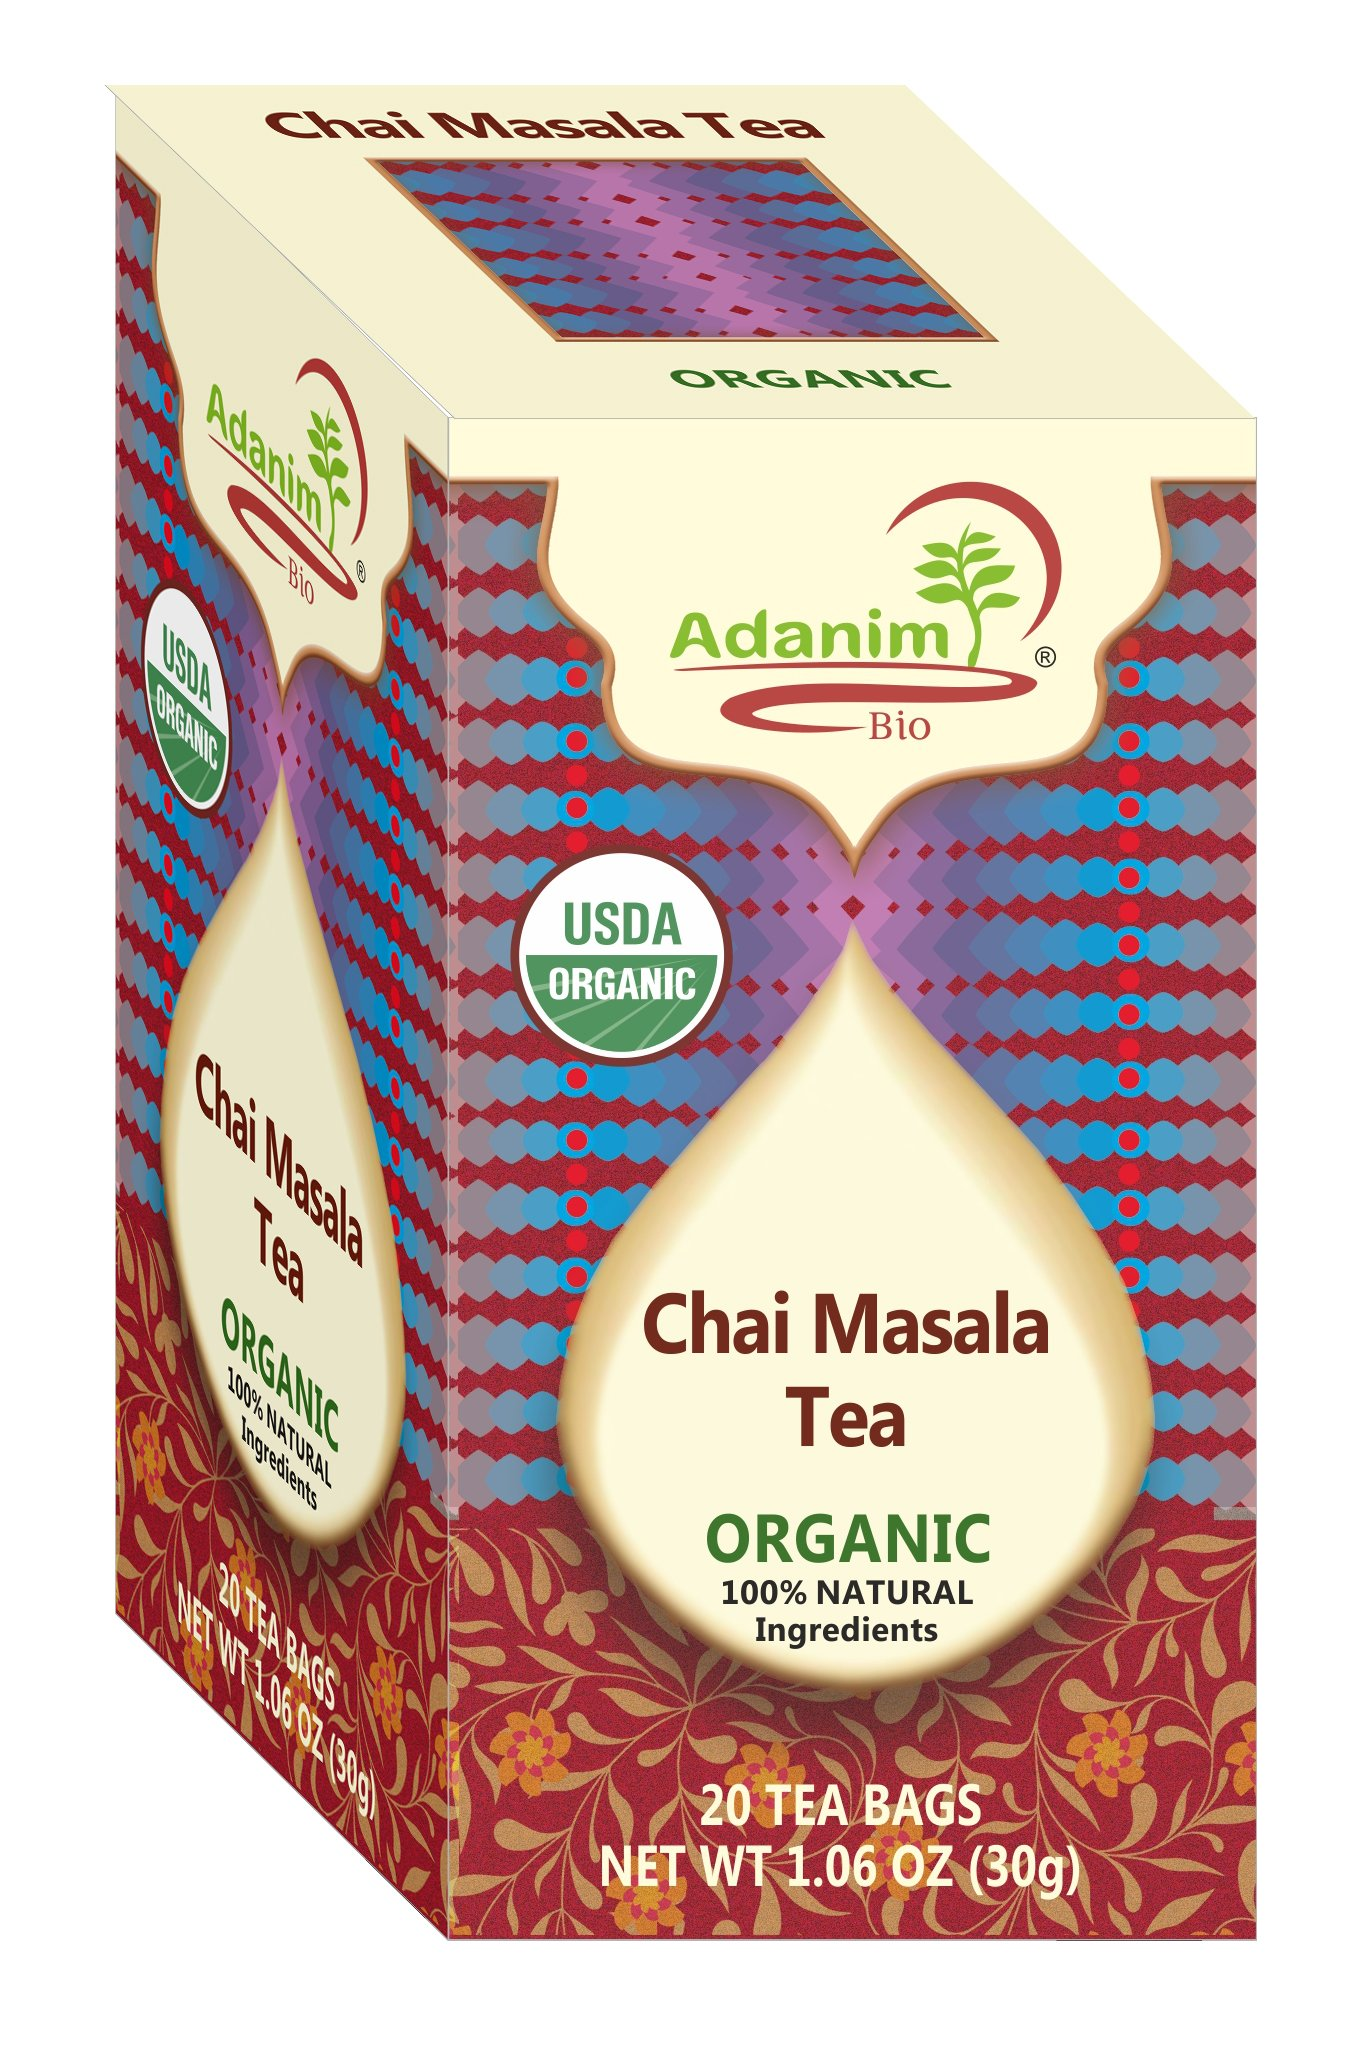 Adanim Chai Masala Tea Bags - Organic Bombay Chai Herbal Tea Blend of Ginger, Cardomom, Cinnamon & Clove (Pack of 3, 60 Count)